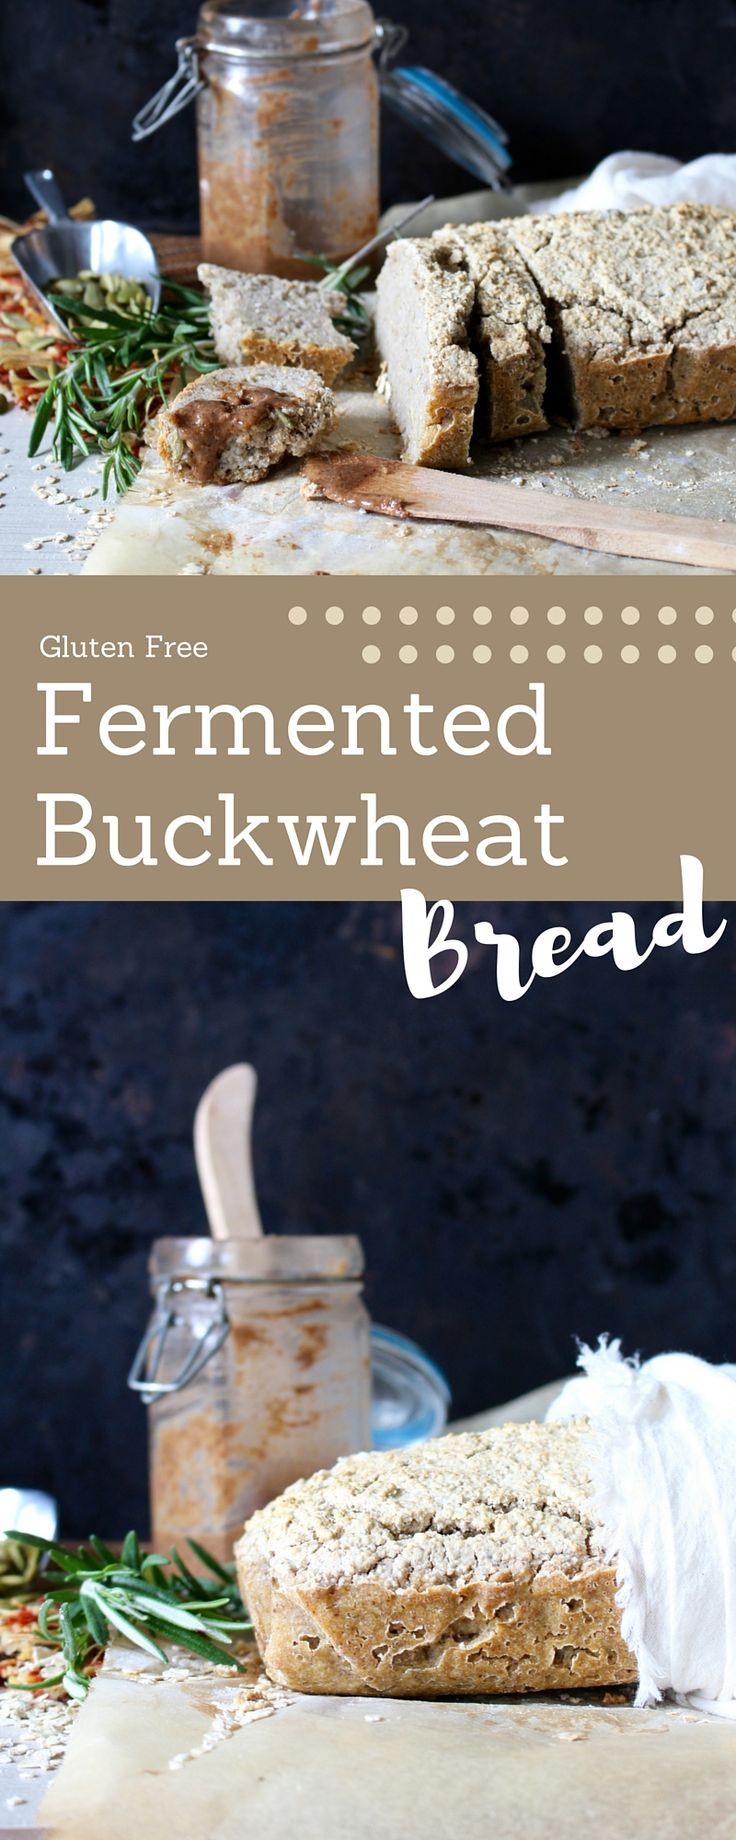 This homemade gluten free bread uses whole food ingredients and is fermented for 3 days before baking, yielding a great bread for promoting good gut health!